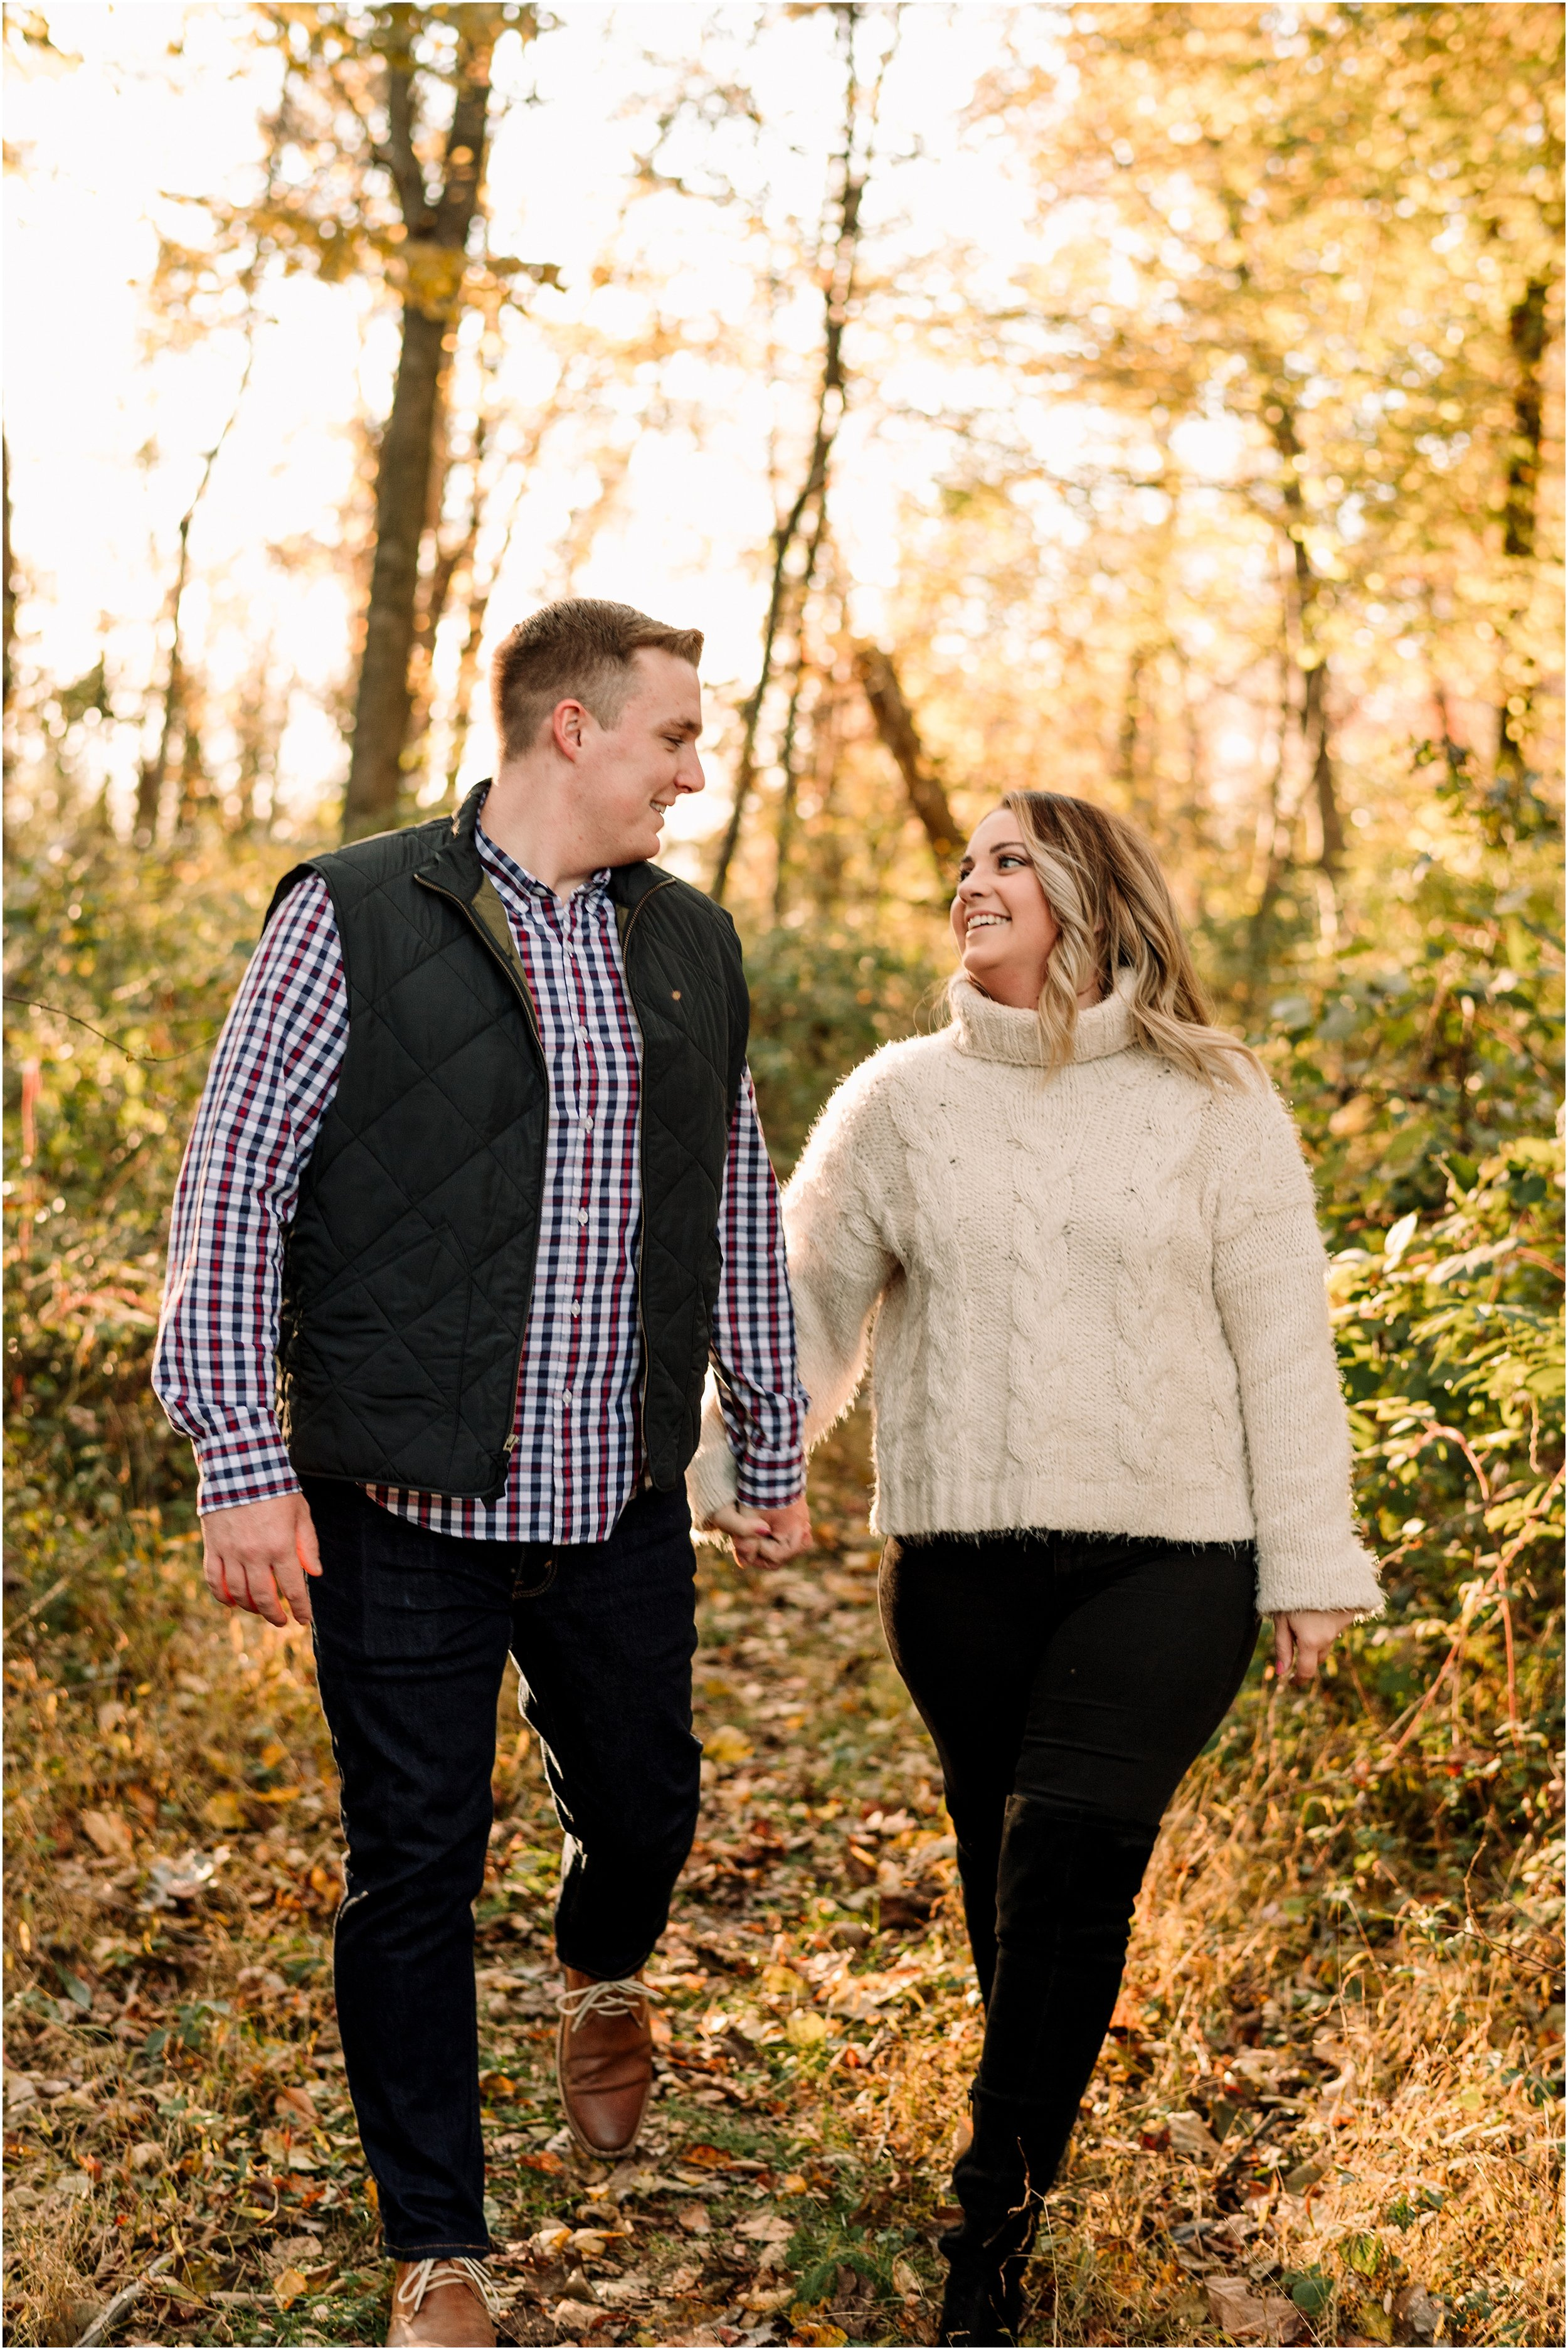 hannah leigh photography Engagement Session Lancaster PA_2298.jpg